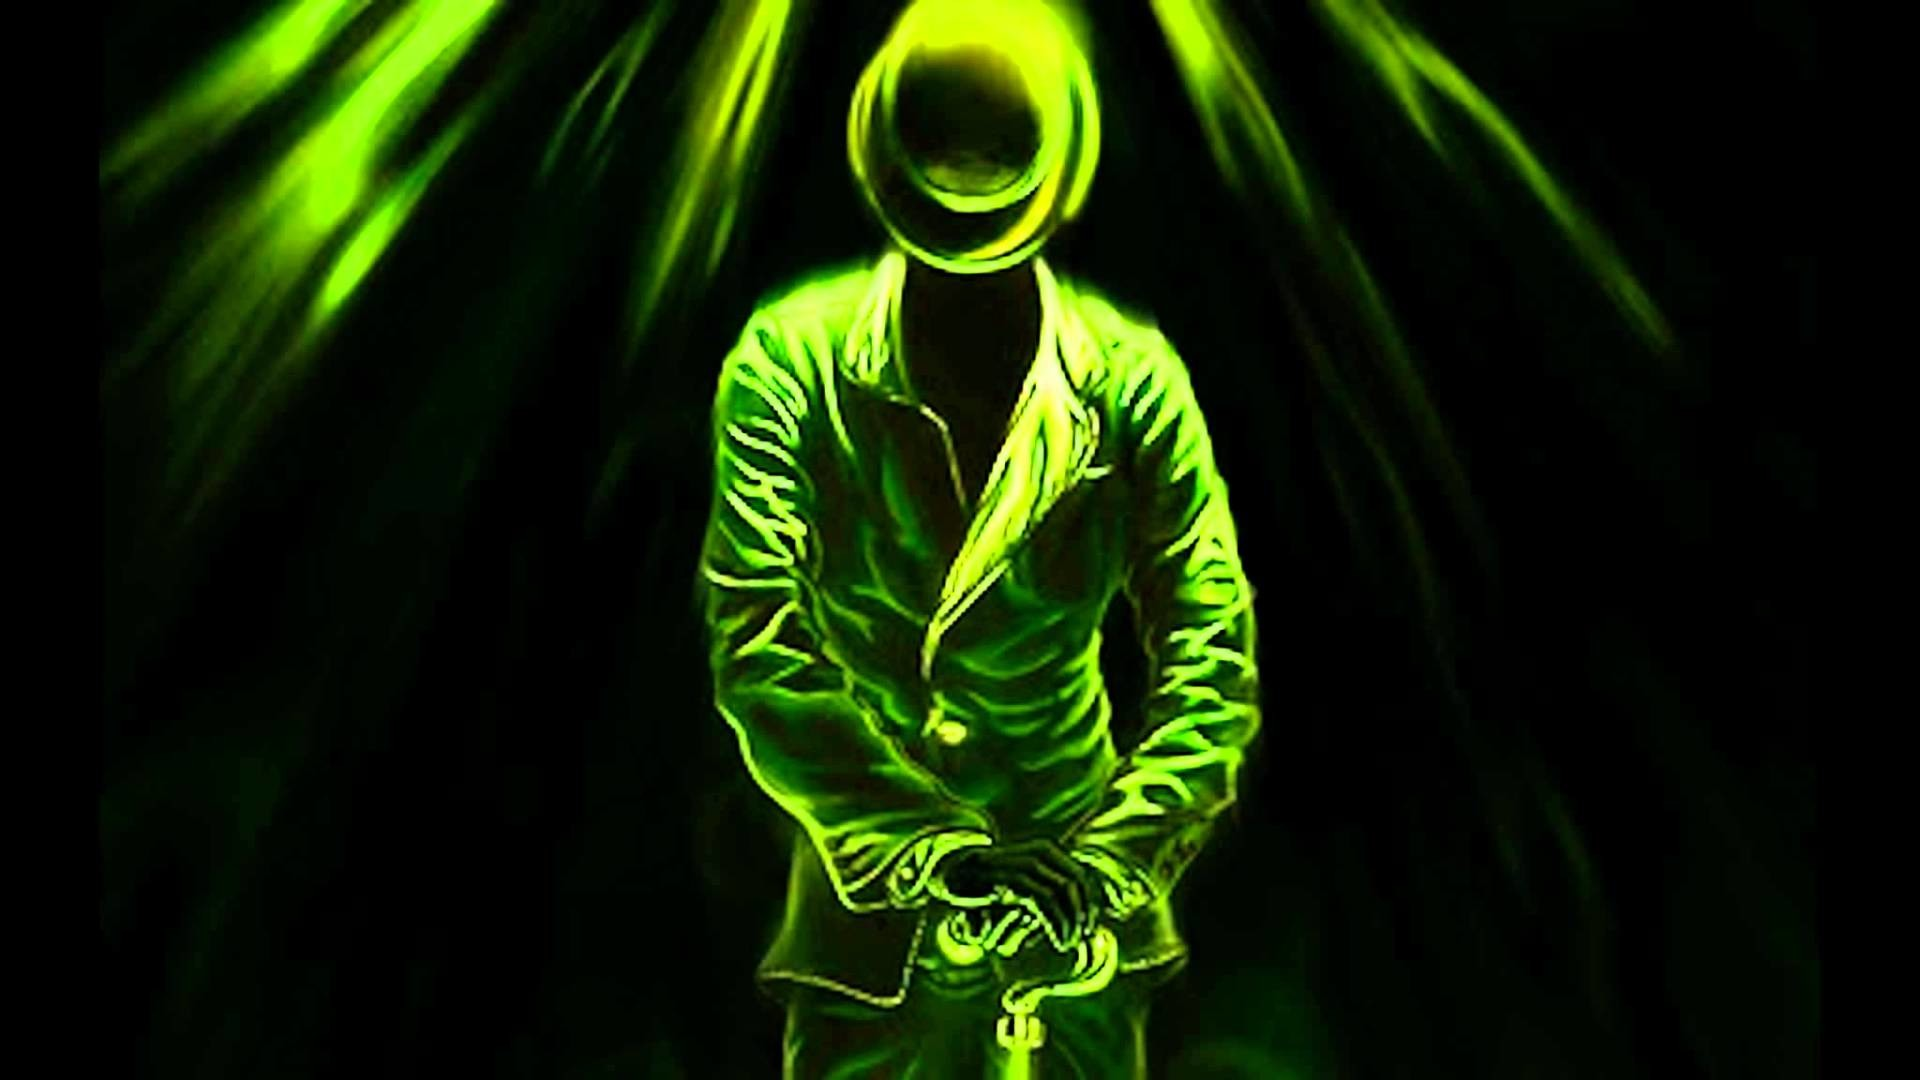 1920x1080 1024x768 The Riddler Wallpaper 1024x768 The, Riddler